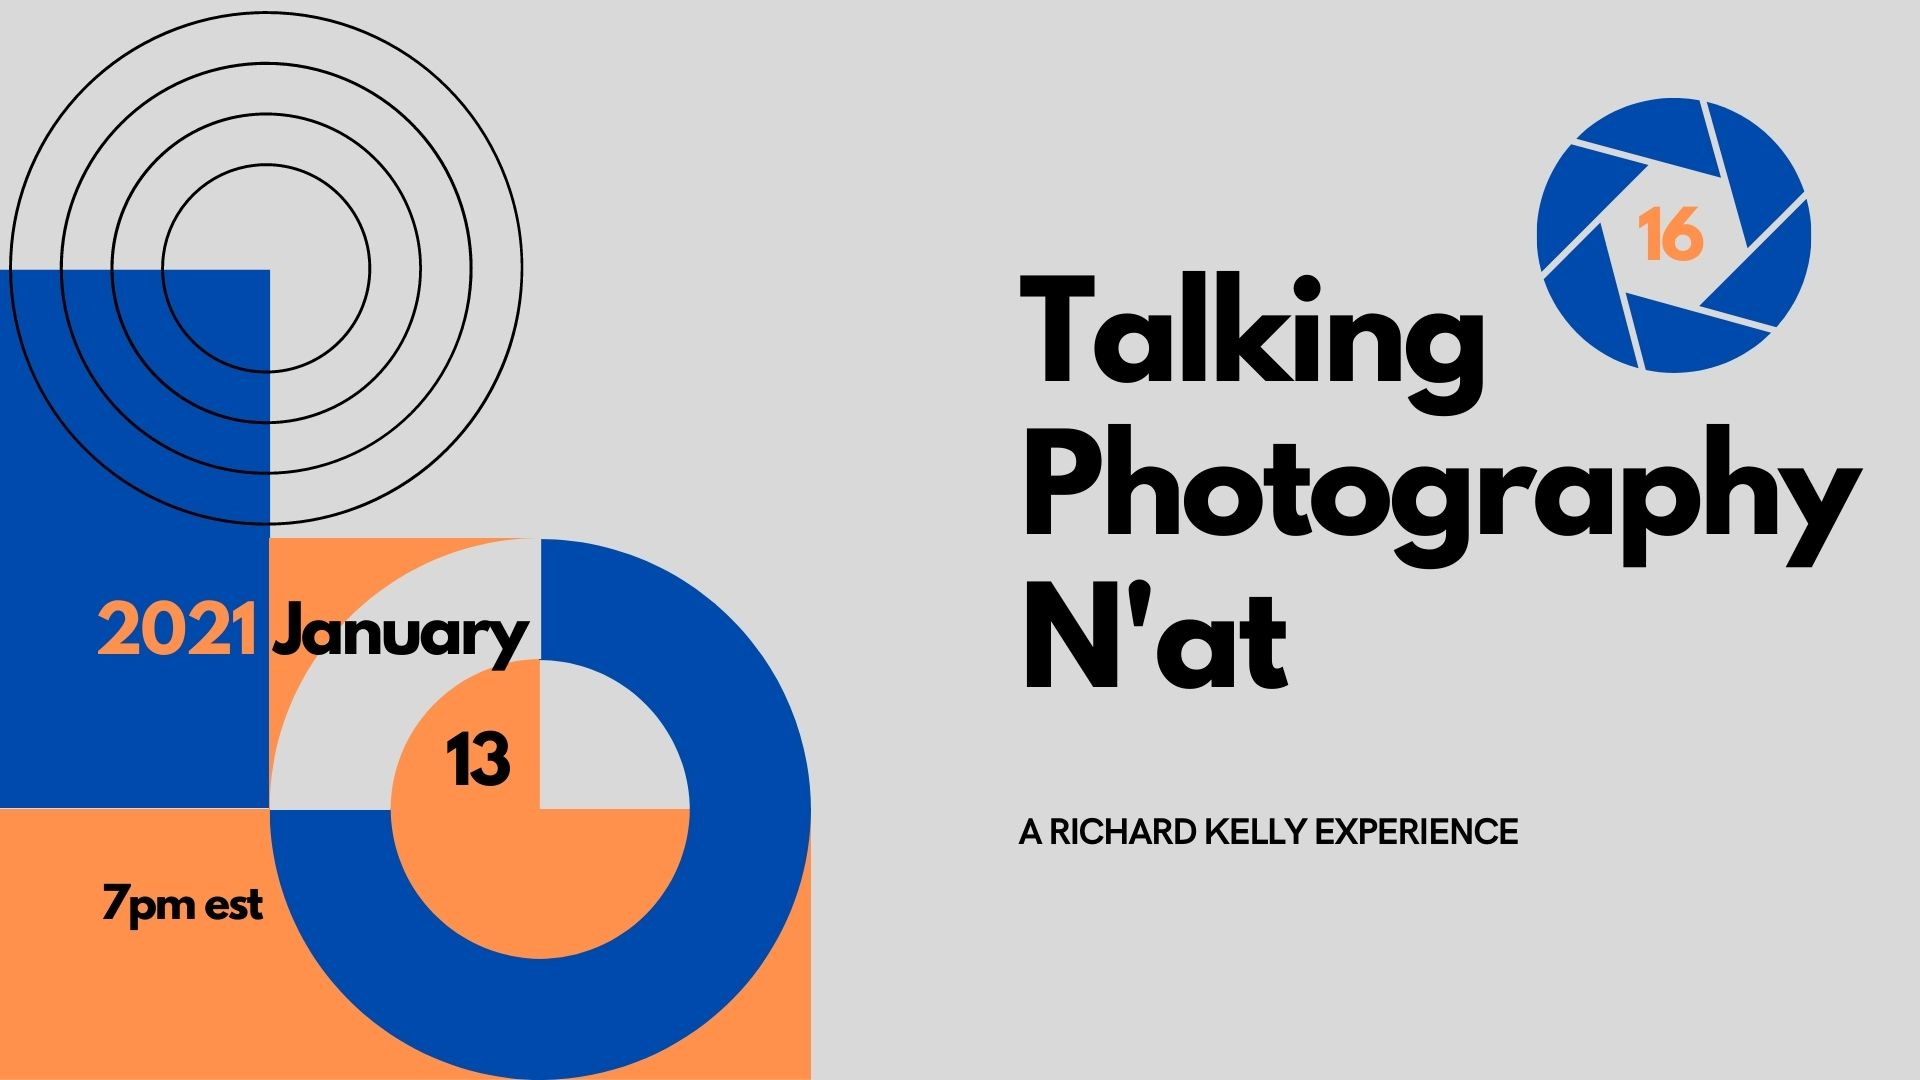 Talking Photo Graphy n